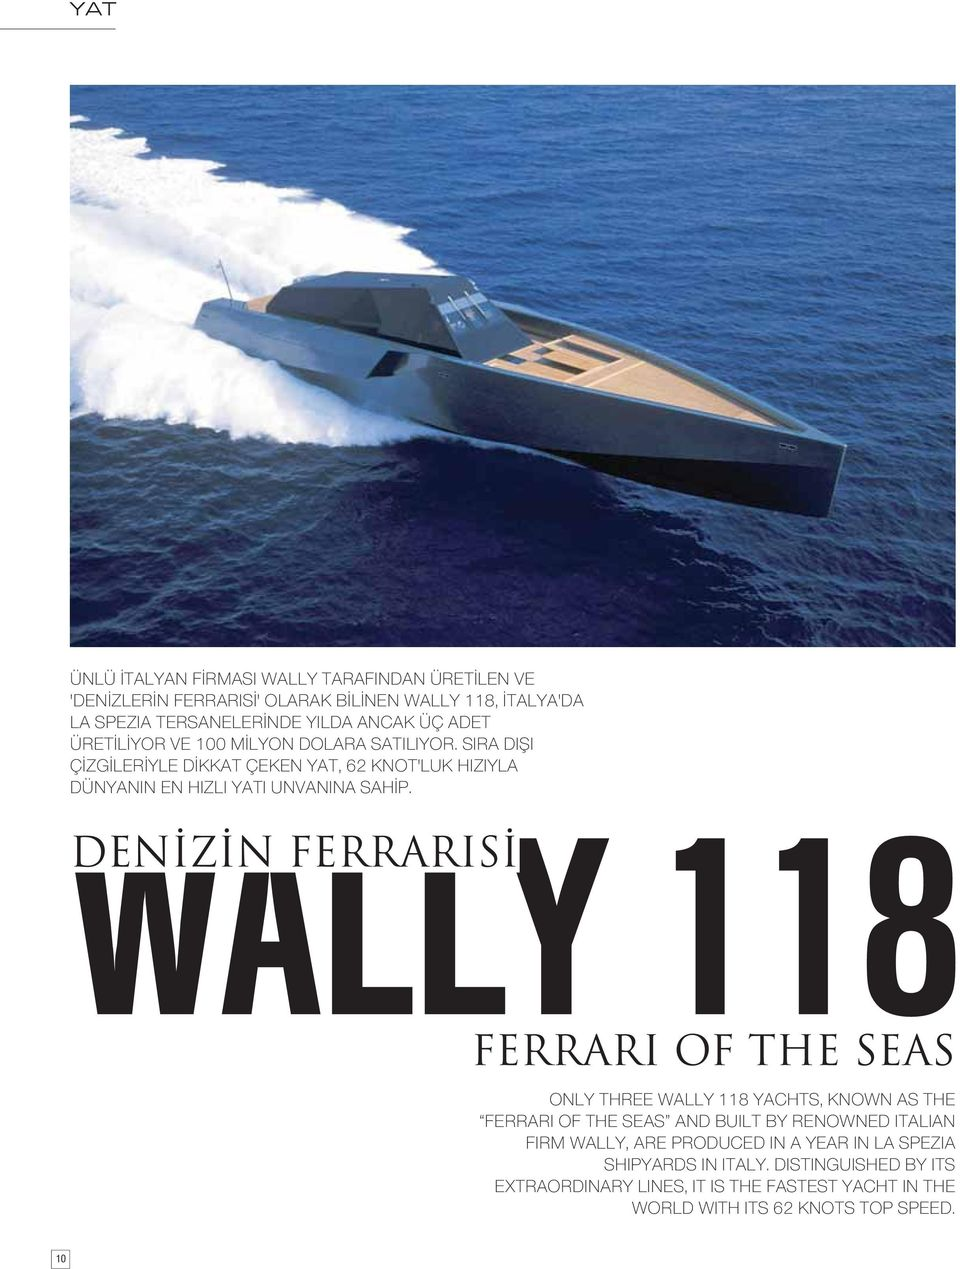 DENİZİN FERRARISİ FERRARI OF THE SEAS ONLY THREE WALLY 118 YACHTS, KNOWN AS THE FERRARI OF THE SEAS AND BUILT BY RENOWNED ITALIAN FIRM WALLY, ARE